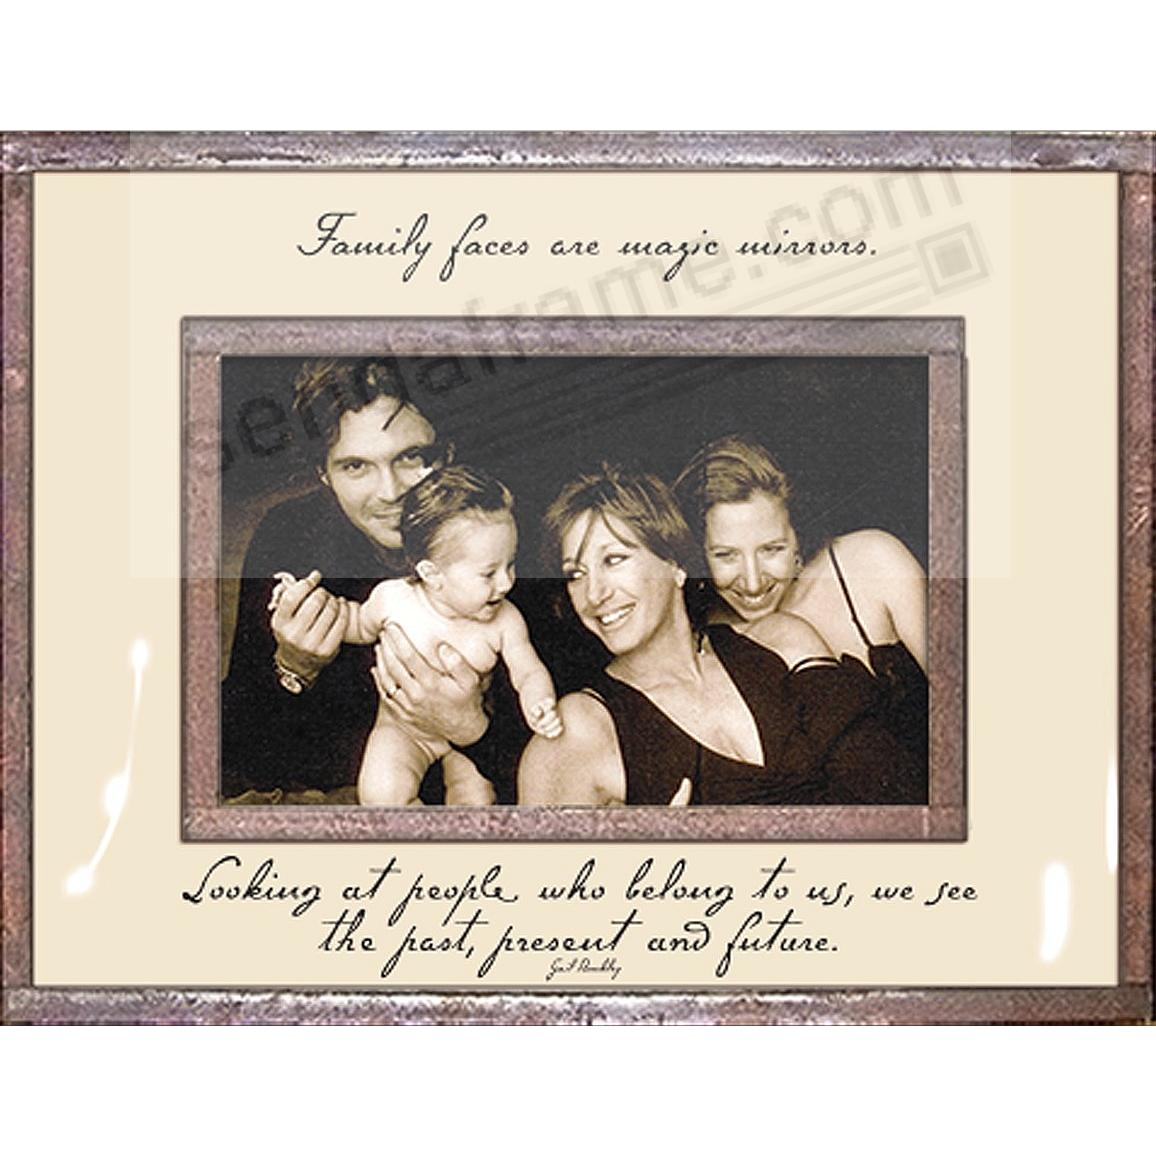 FAMILY FACES ARE MAGIC MIRRORS Copper + Clear Glass 7x8 by Ben's Garden®